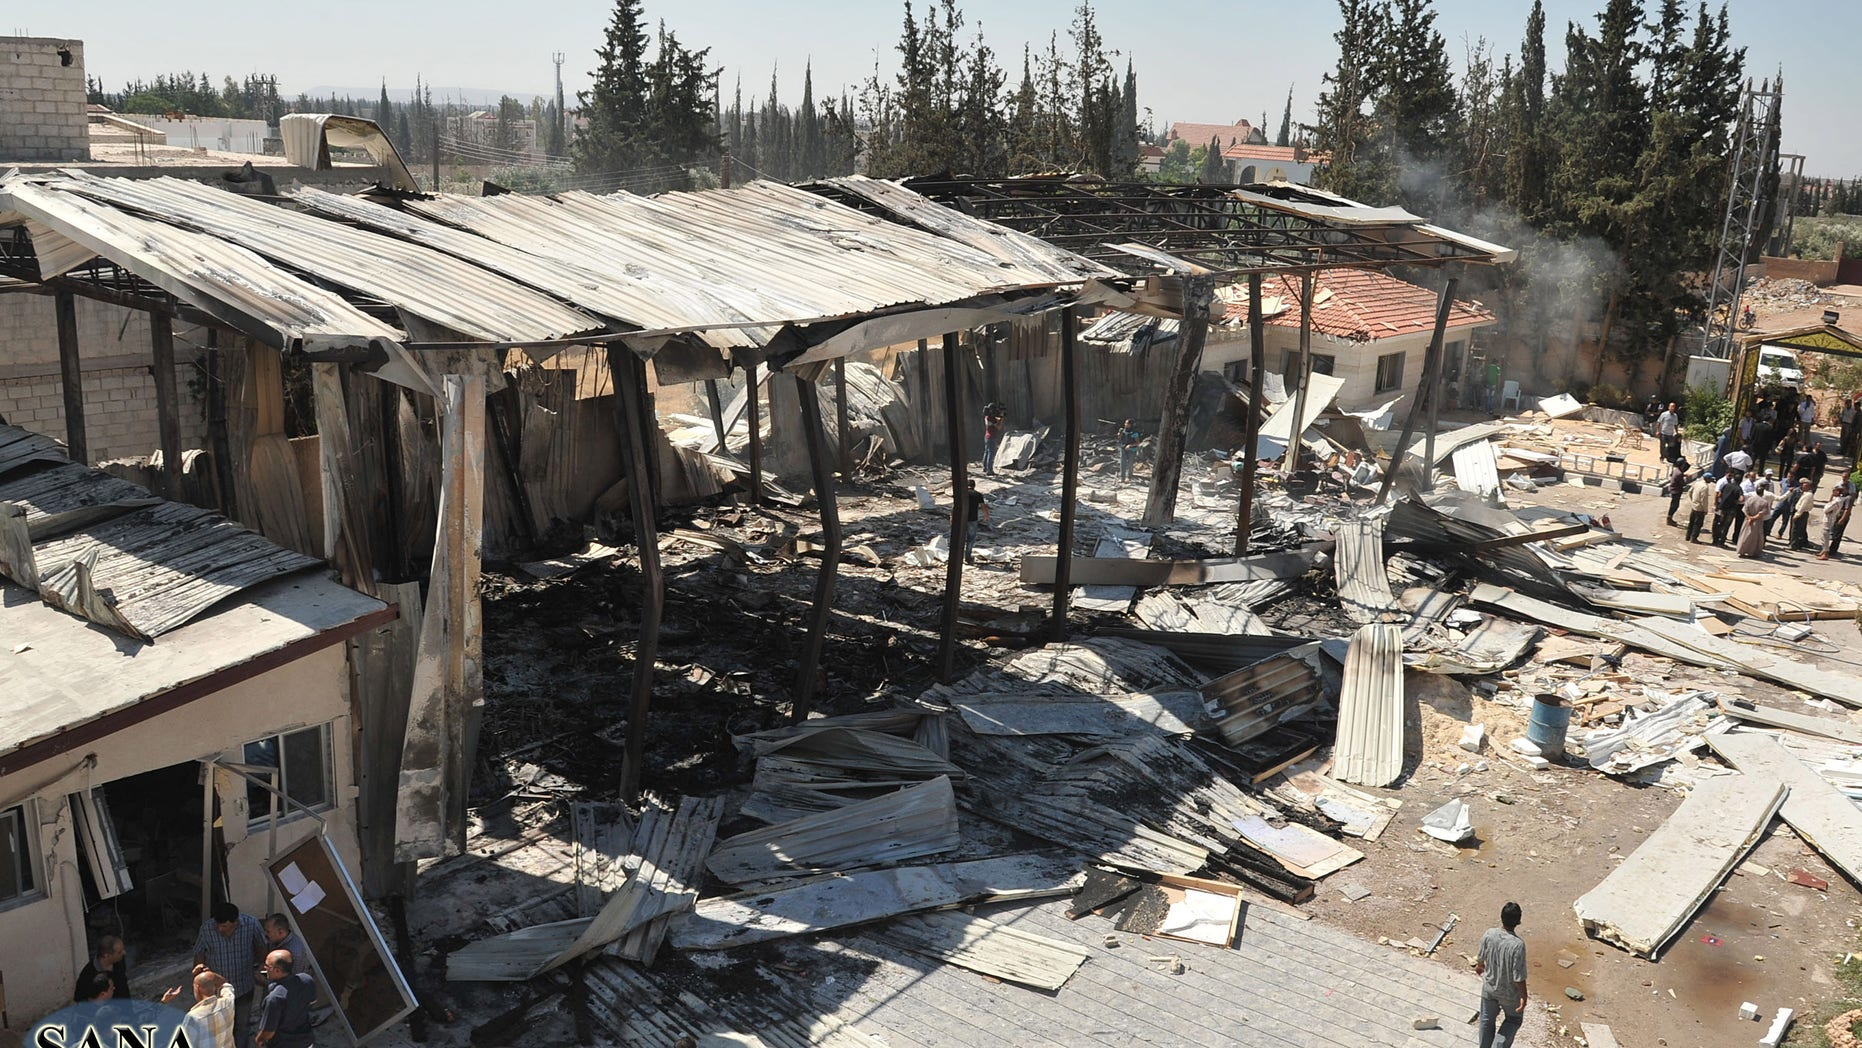 June 27, 2012: In this photo released by the Syrian official news agency, SANA, the damaged Ikhbariya TV compound is seen after it was attacked by gunmen, in in the town of Drousha, about 14 miles south of Damascus, Syria.